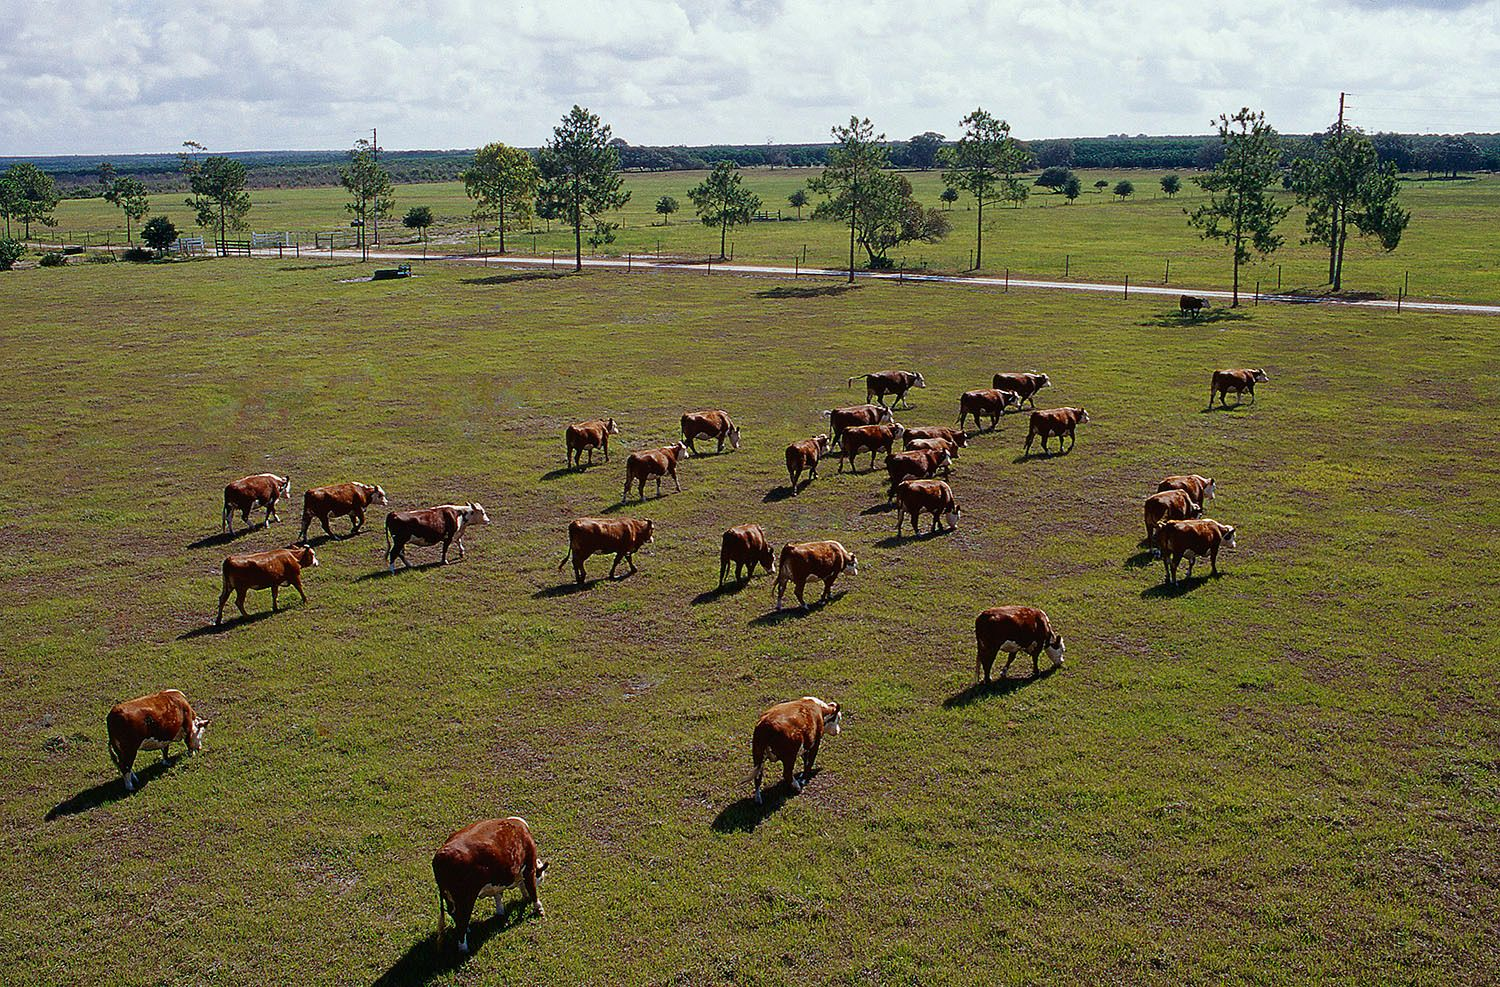 Grazing Cattle in Florida